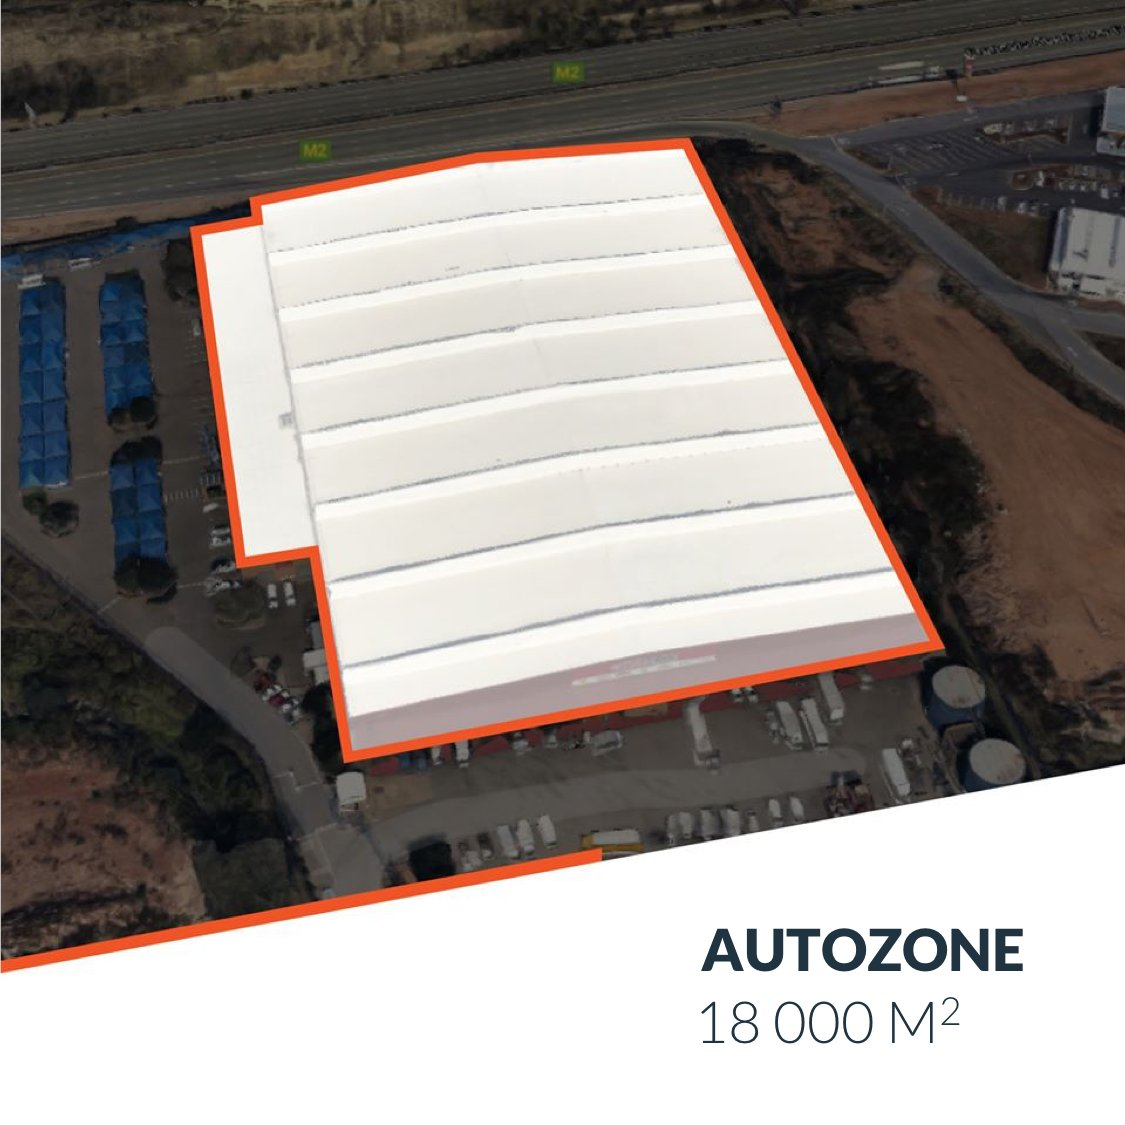 At 18 000m2 @AutoZoneSA's Denver DC is their largest lease commitment.  Our GCS team worked in conjunction with Autozone and SA Corporate to conclude a long-term lease agreement for the site on best terms for both parties. #commercialrealestate #leasing #autozone https://t.co/vwzSr4tZW0